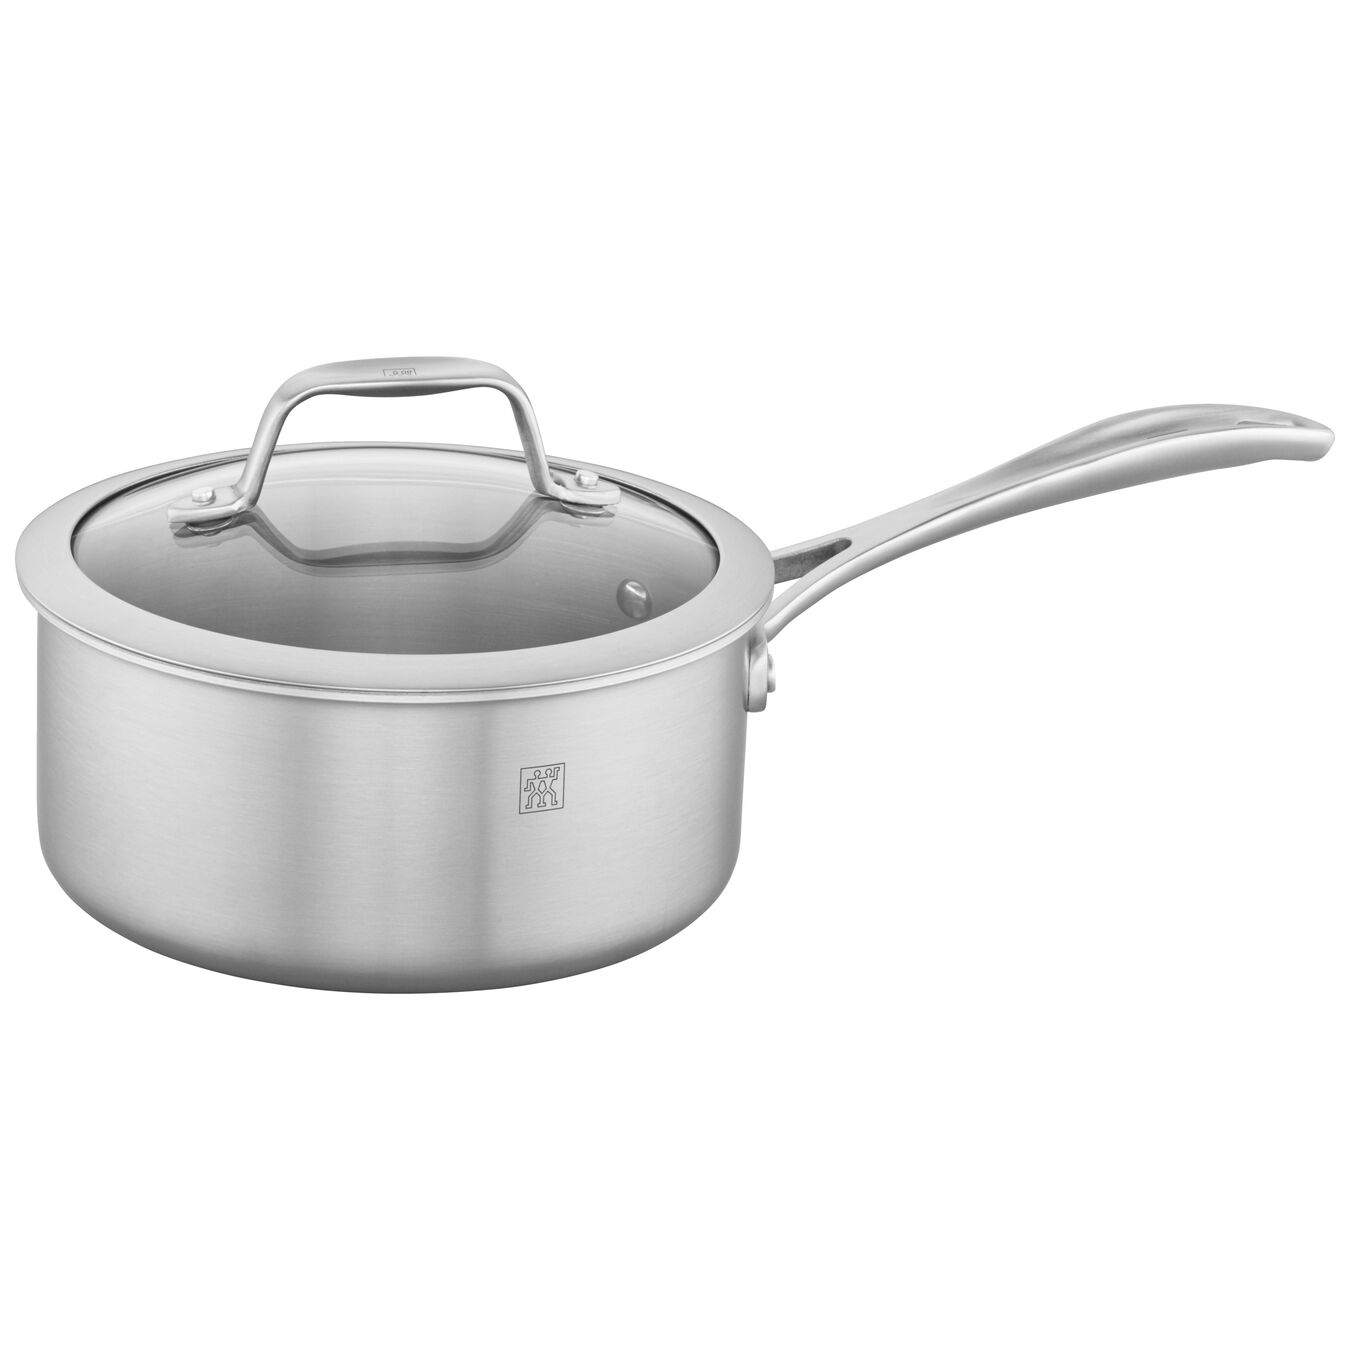 1.75 qt, stainless steel, Sauce pan,,large 1